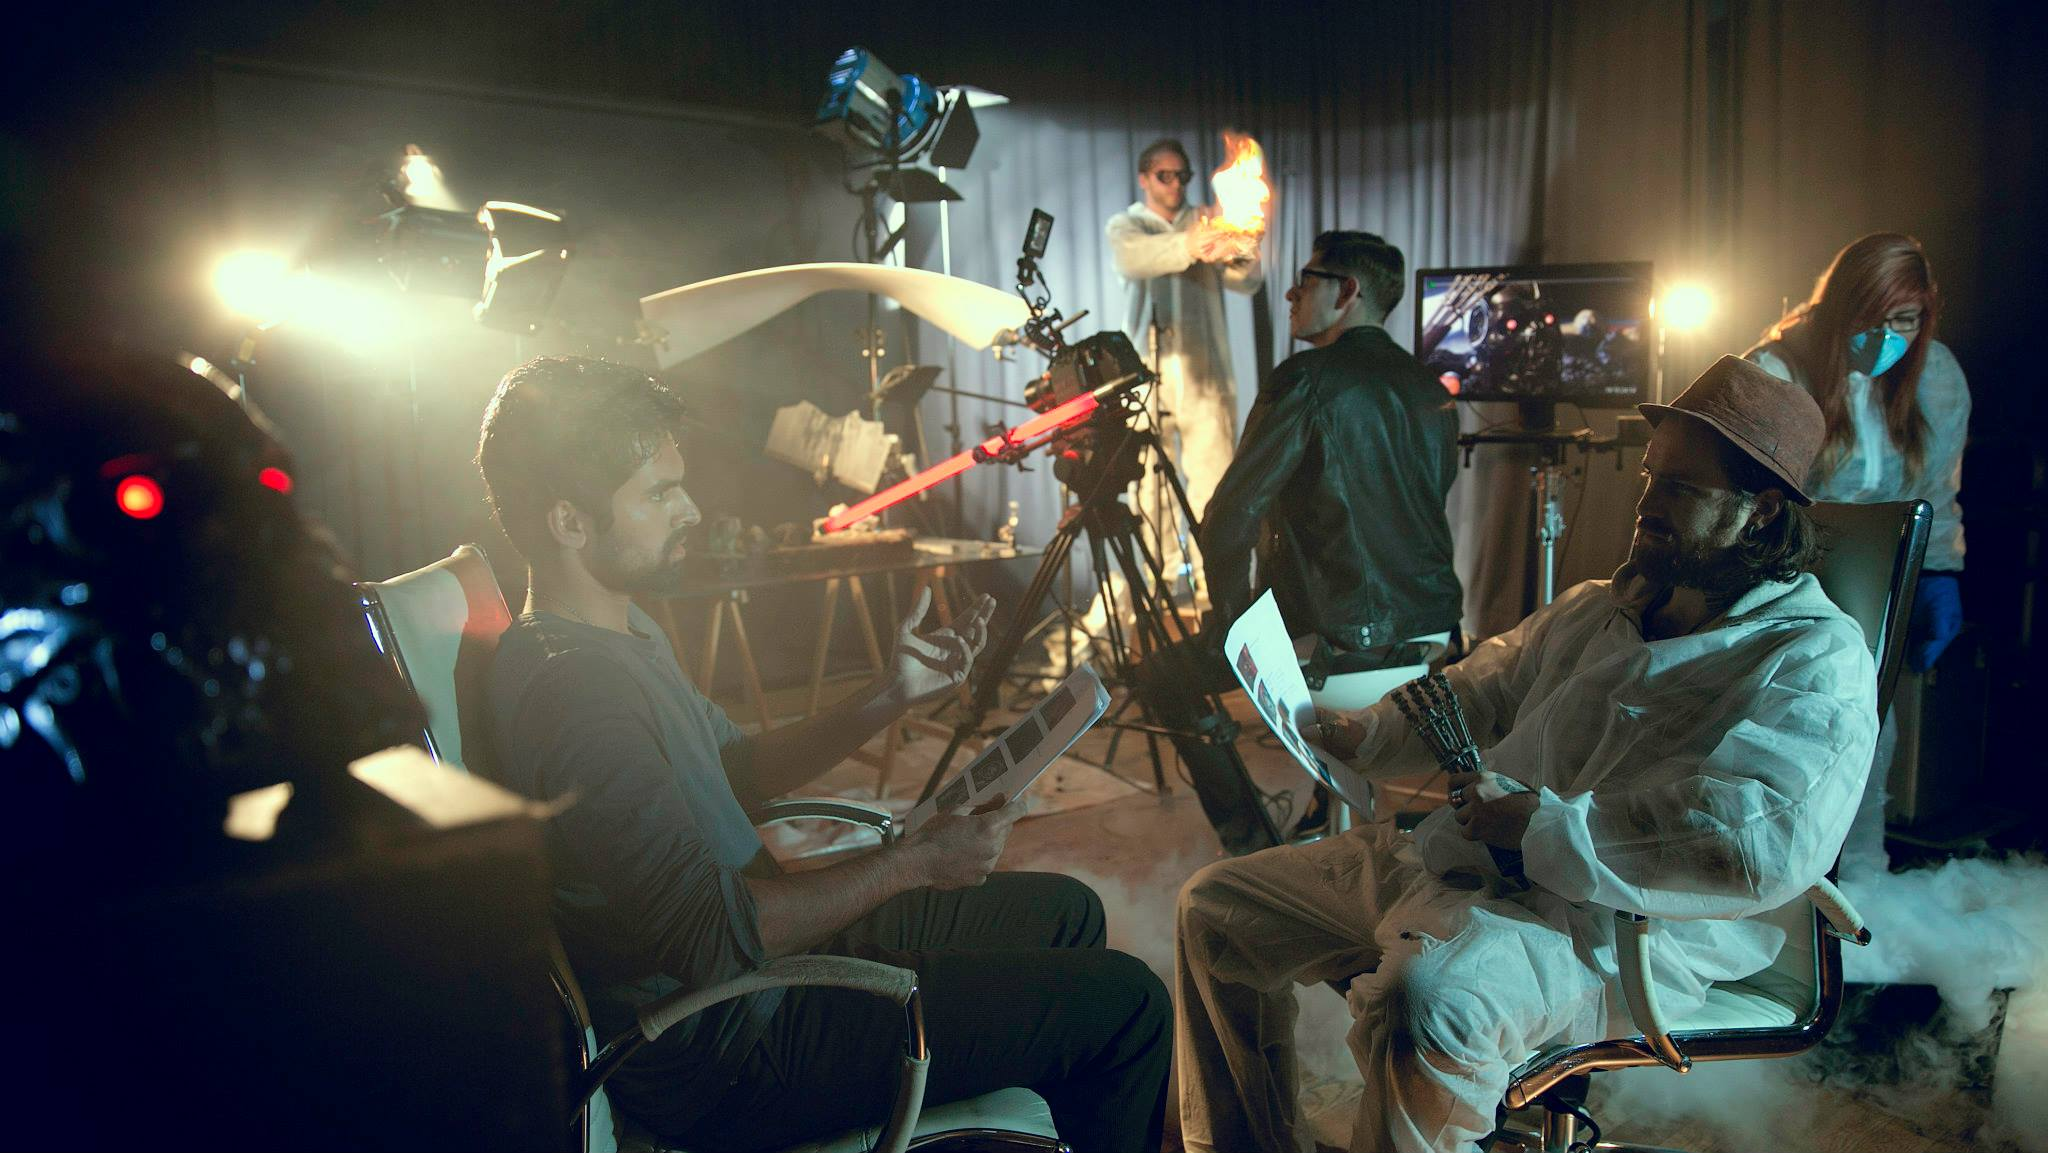 Behind the Scenes: Terminator Feat. Police Watch AD by Joel Cartier